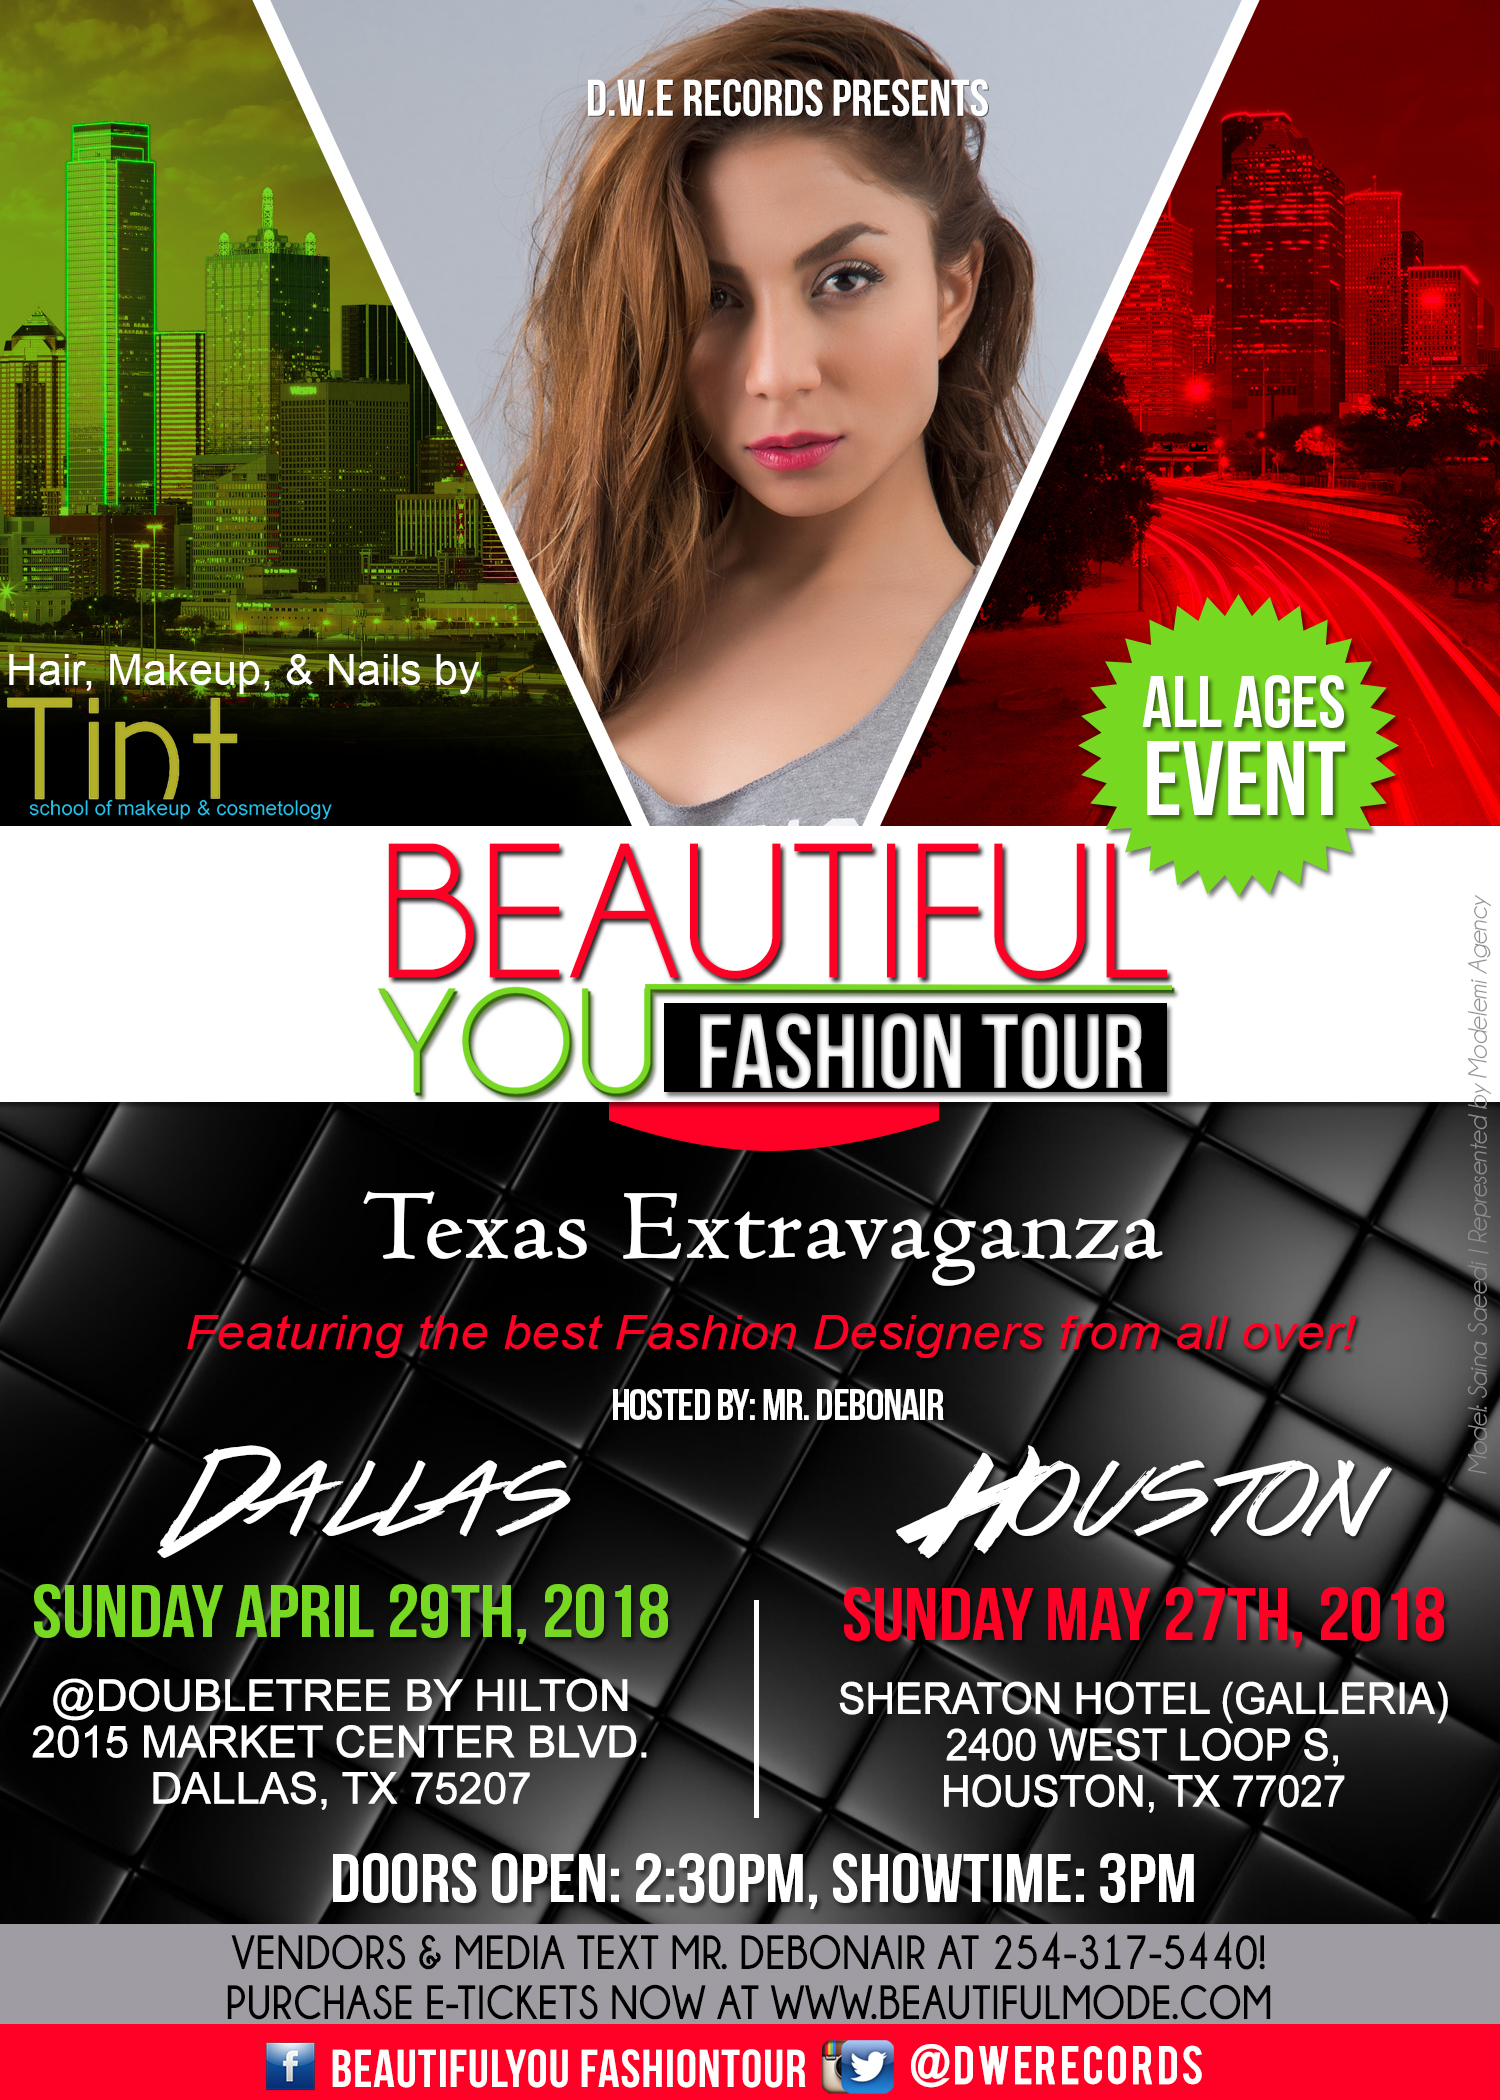 Dallas, TX</a><br> by <a href='/profile/Mr-Debonair/'>Mr. Debonair</a>